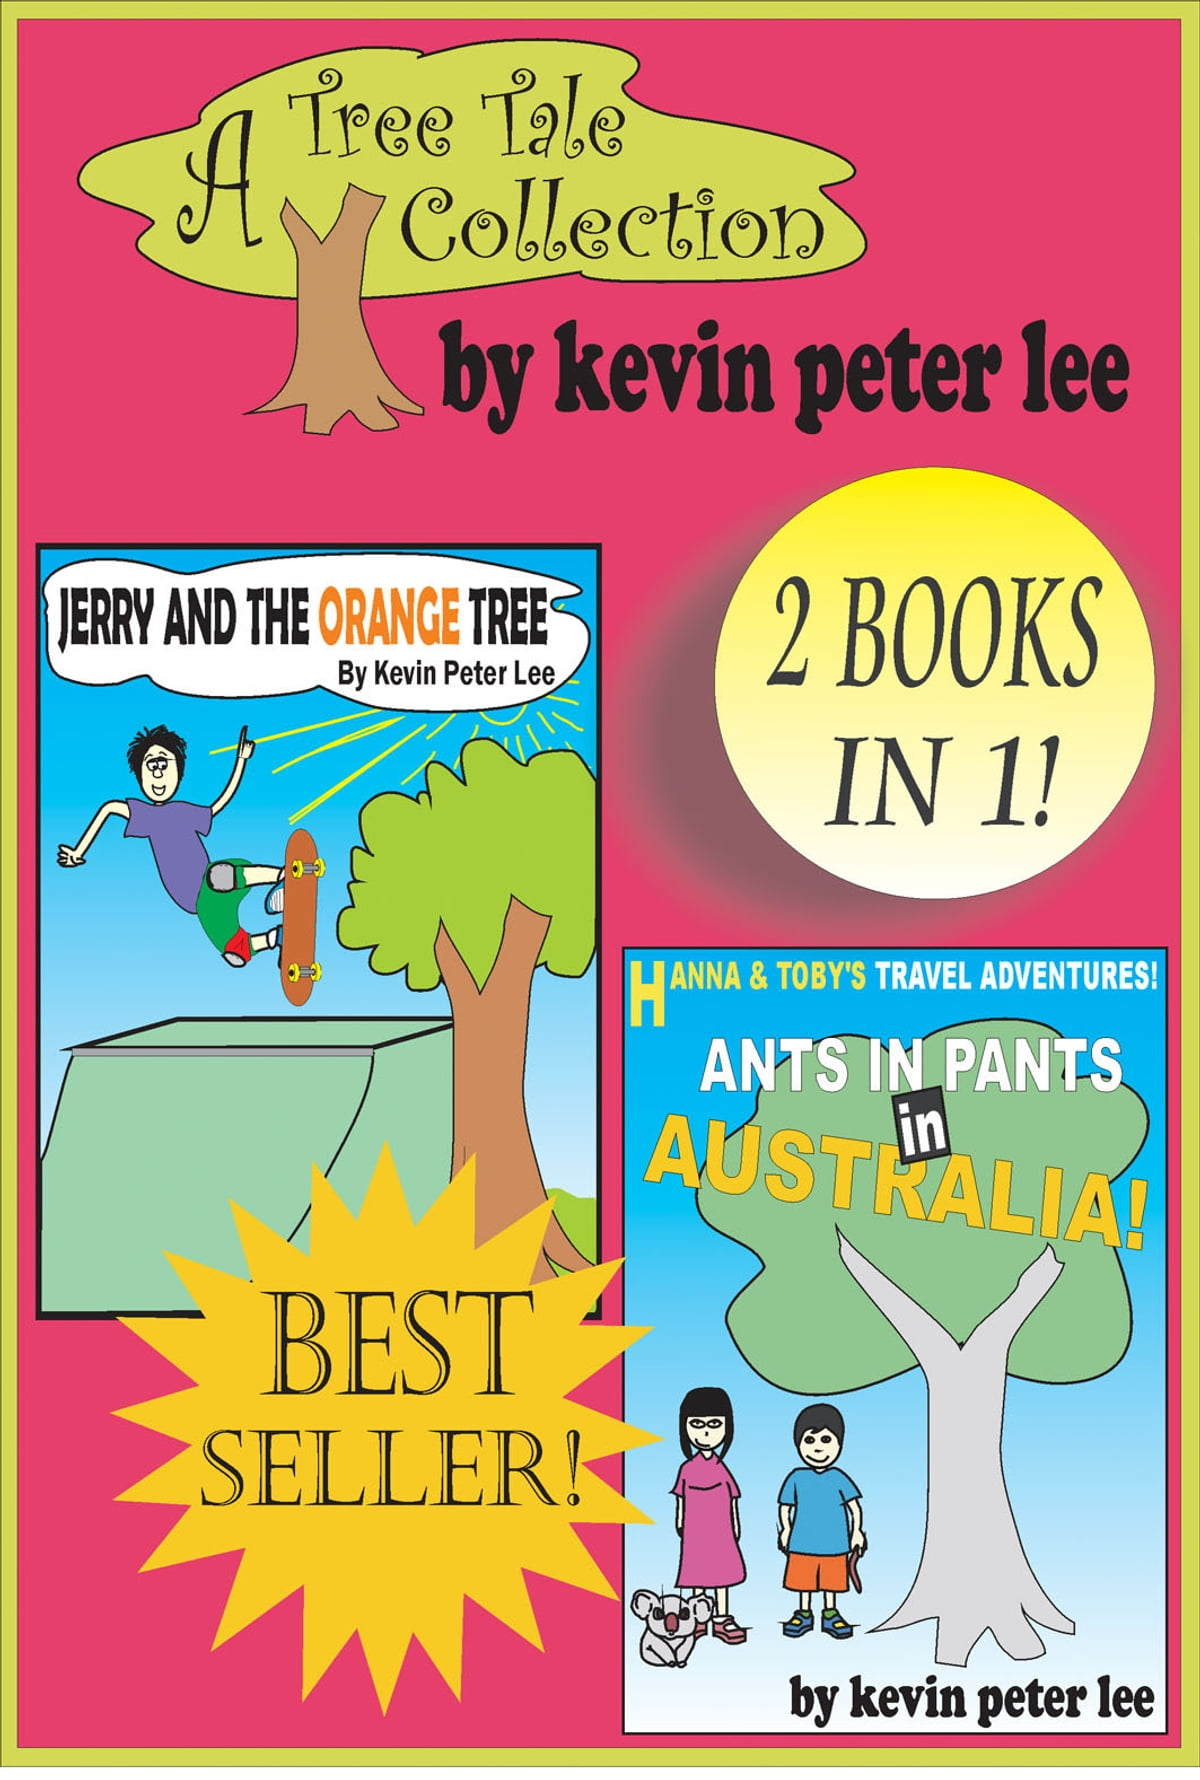 More Books by Kevin Peter Lee